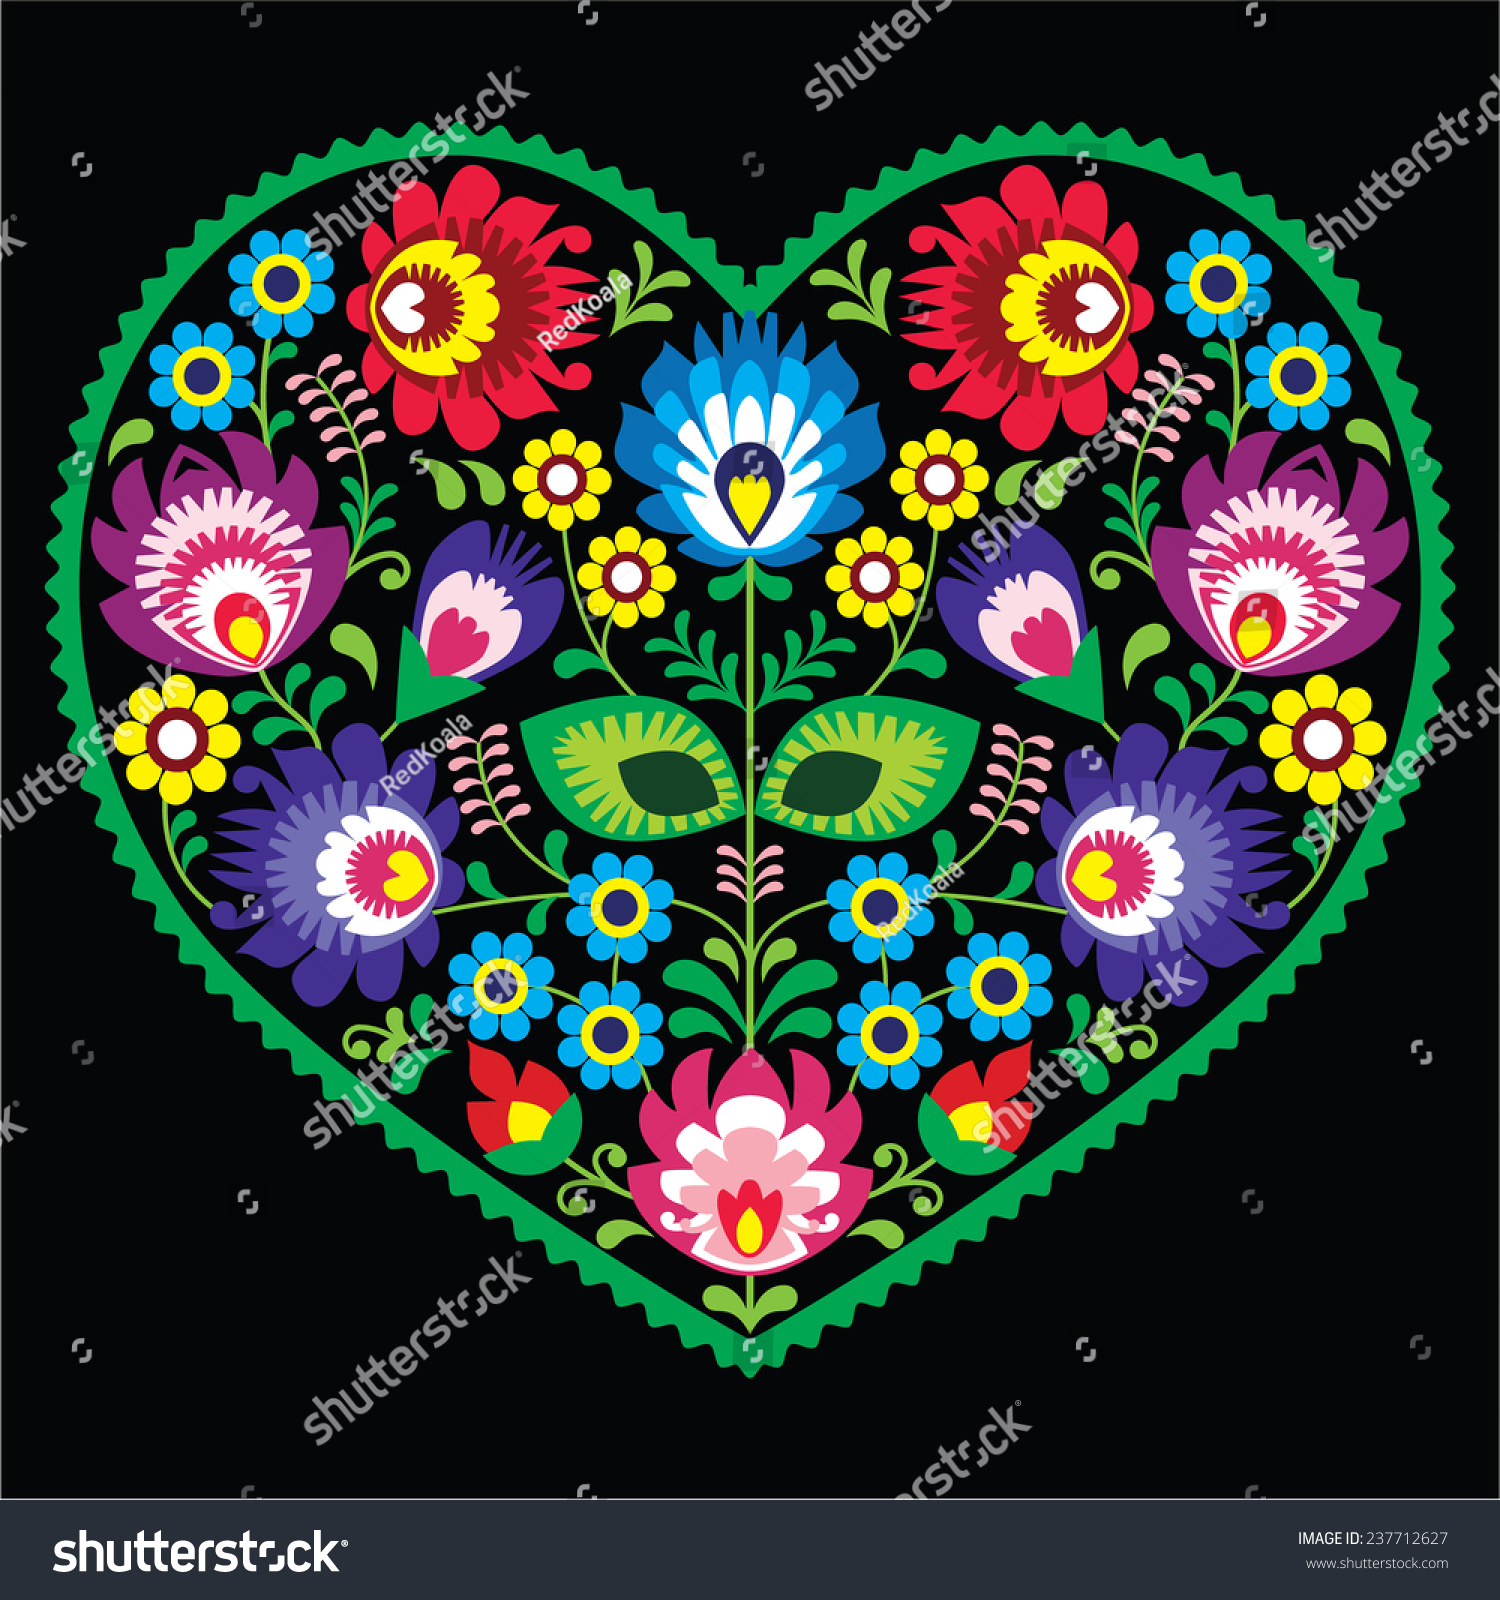 Polish Folk Art Art Heart Flowers Stock Vector Royalty Free